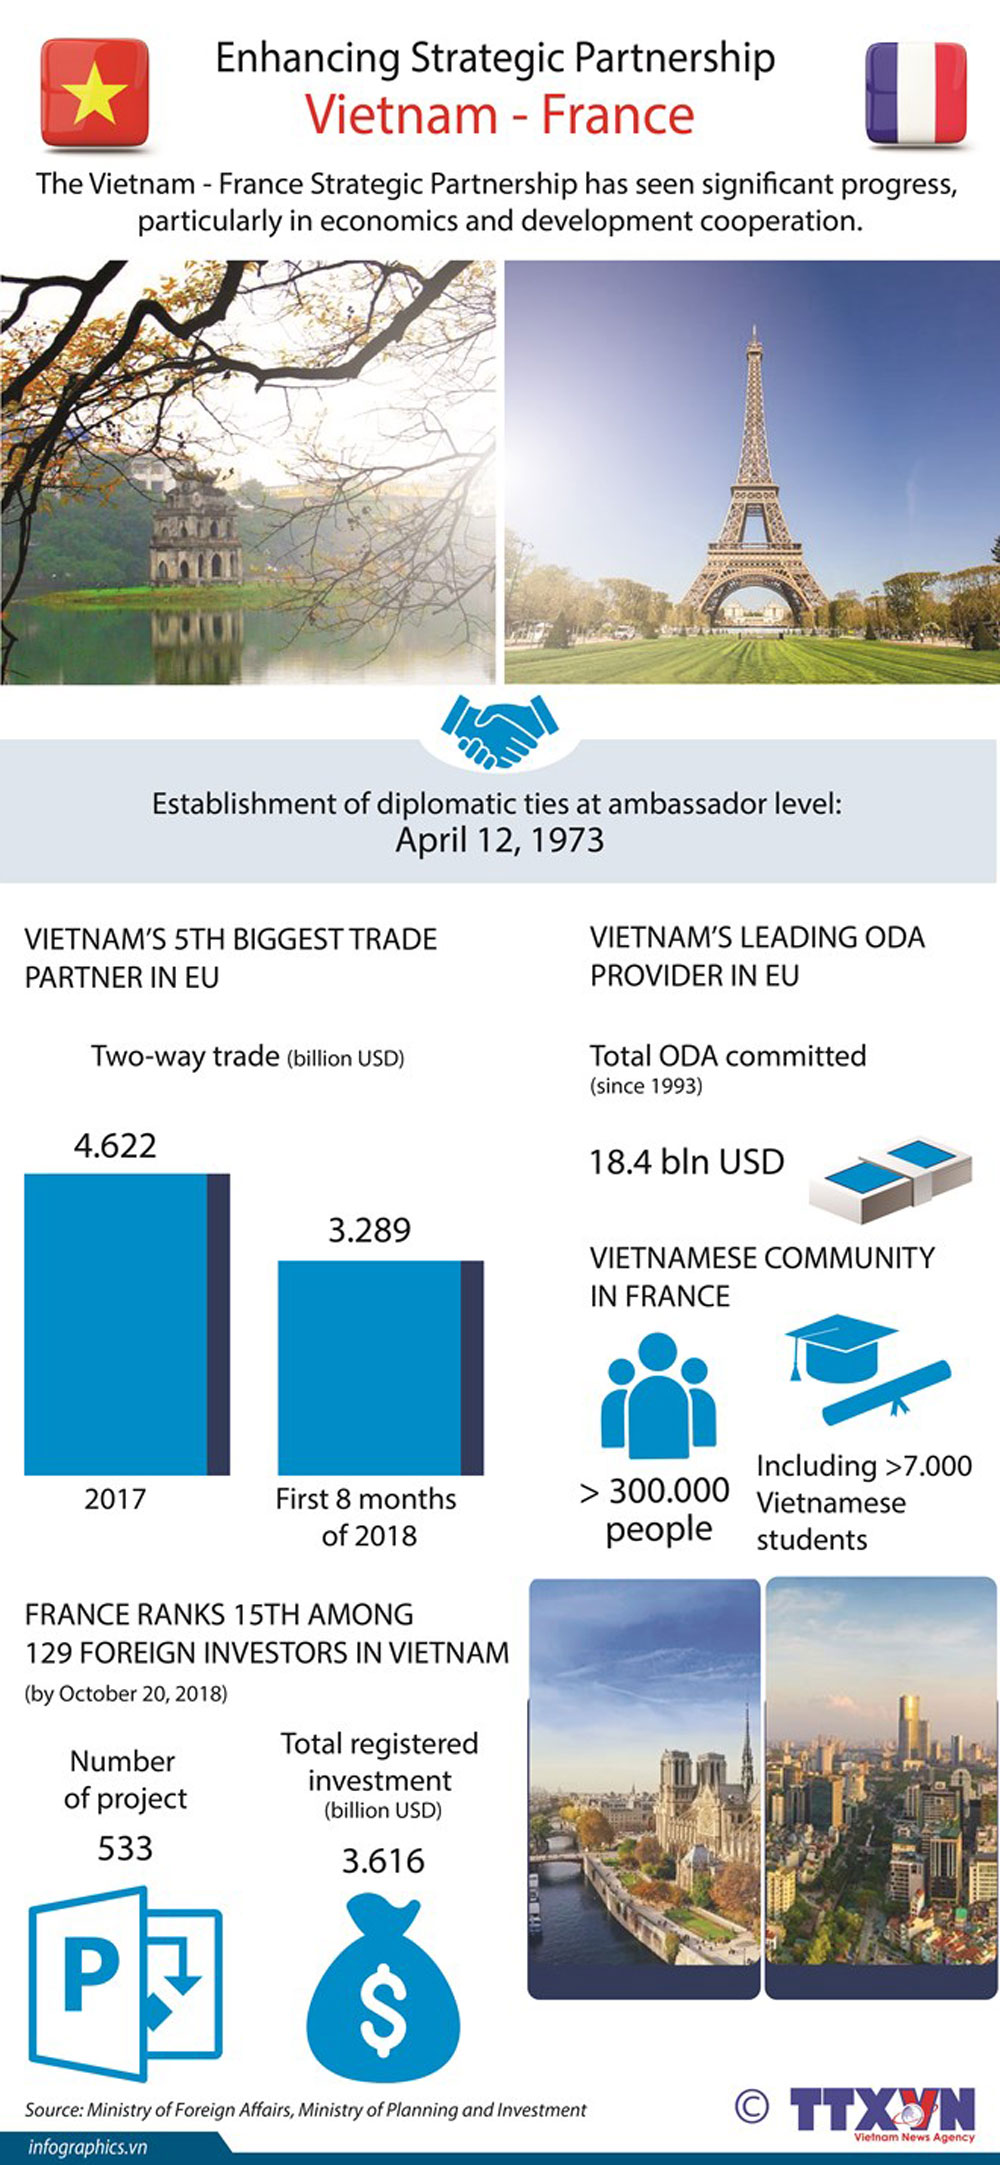 Vietnam – France, Strategic Partnership, significant progress, economic and development cooperation, diplomatic ties